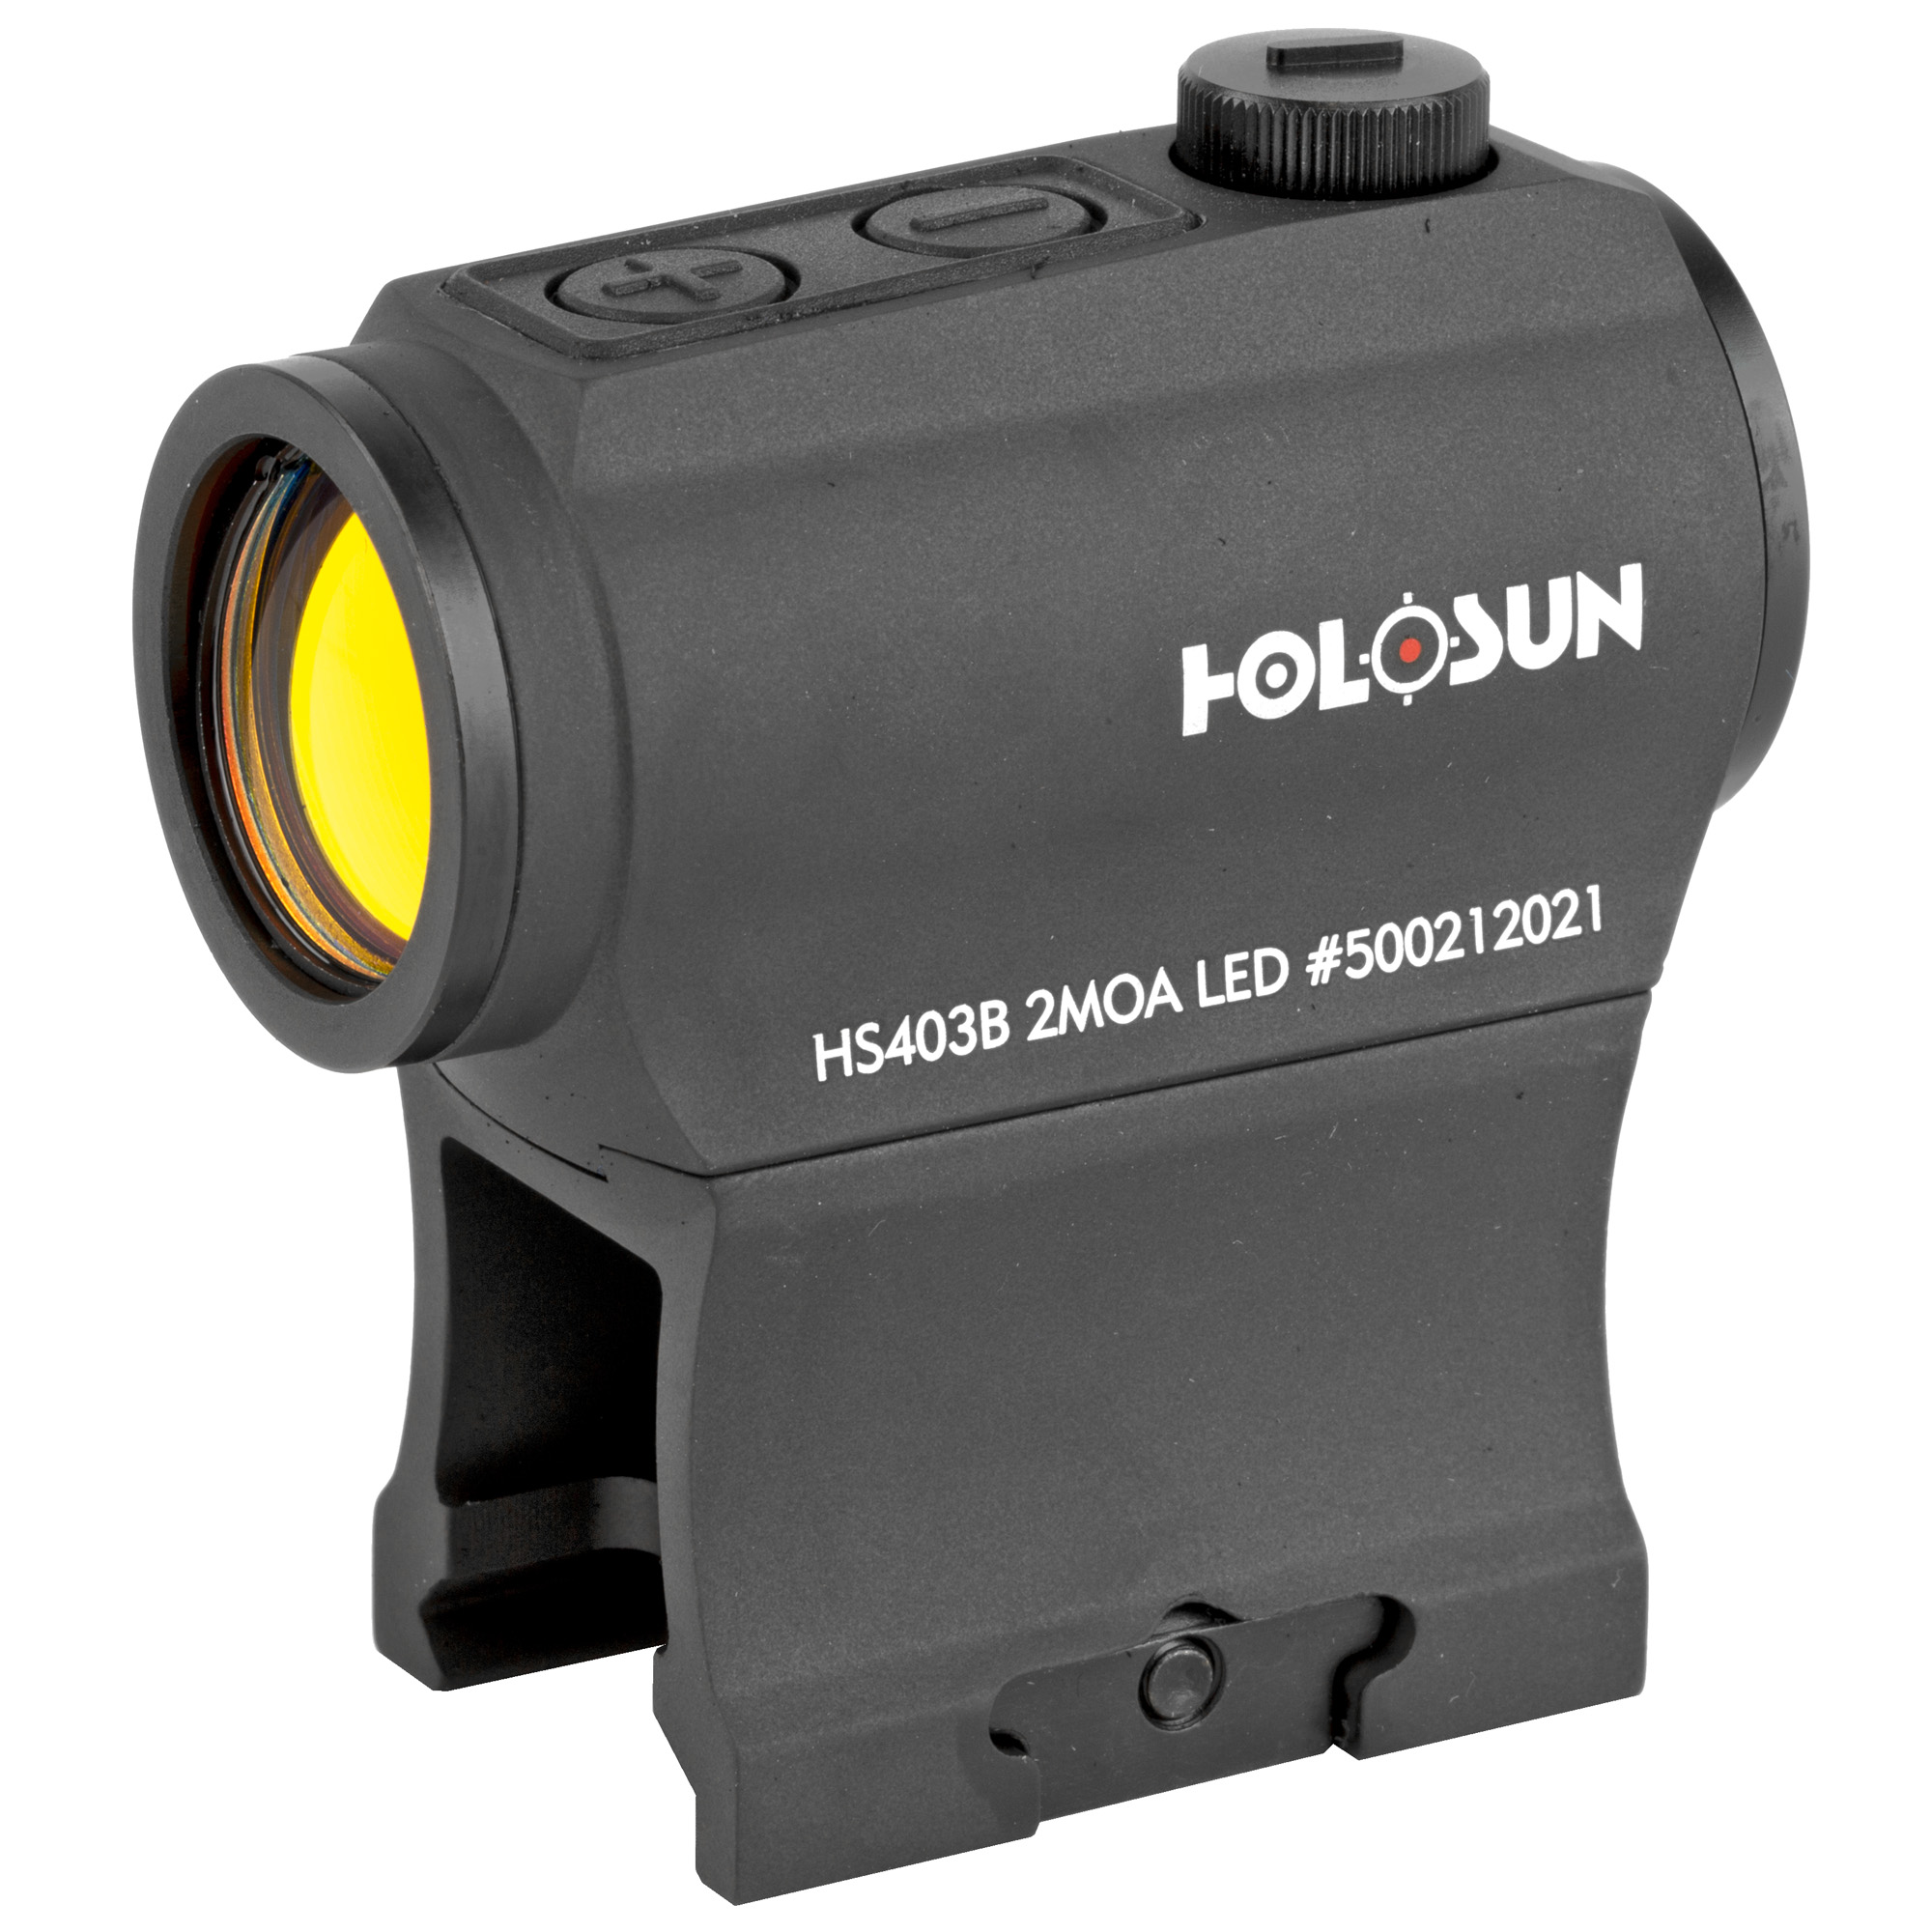 """The 403B is a small compact micro red dot optic. Employing Holosun's LED technology"""" the lifetime for one CR2032 battery can be up to 5 years. This optic features Holosun's """"Shake Awake"""" technology that powers the optic on with slight movement of the 403B. It may be installed on various firearms such as shotguns"""" pistols"""" air rifles and crossbows. The HS403B is compatible with standard mounts."""